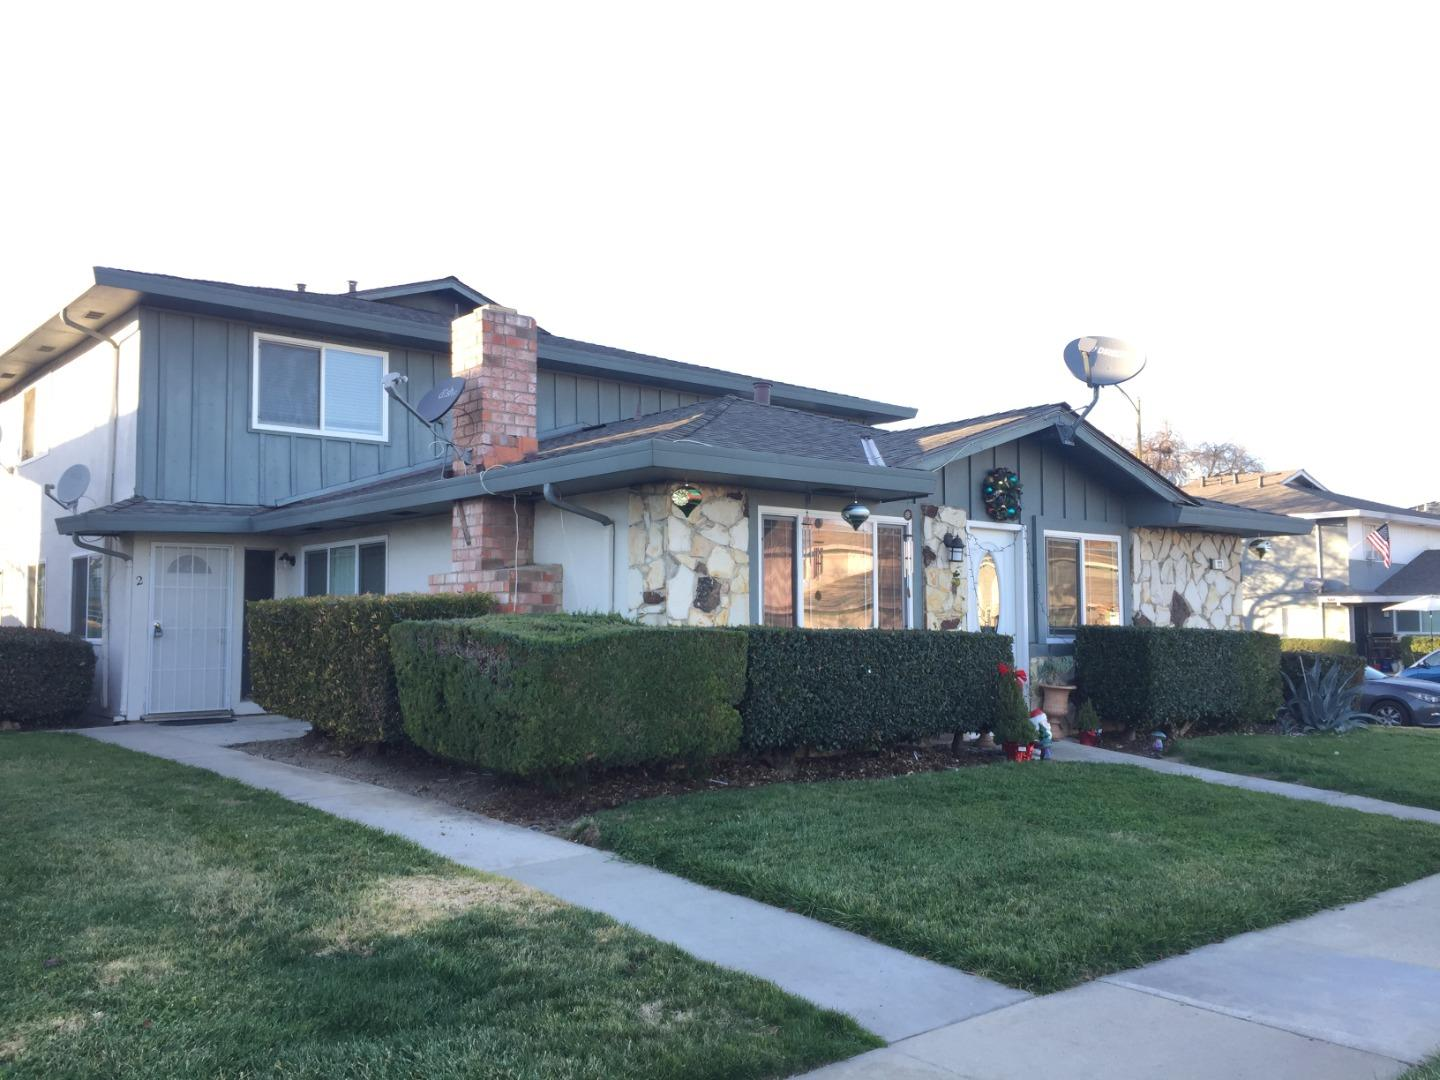 Please come see this beautifully remodeled two bedroom condo.  The kitchen is brand new with beautiful new cabinets, new quartz counter tops, new sink and faucet, new dishwasher and new paint.  The downstairs has a new security screen door,  All new carpeting, new window coverings, new paint and a new light fixture.  The upstairs has upgrades to the bathroom including a new vanity, new faucet, new medicine cabinet and new light and exhaust fan, plus new paint upstairs and new carpets and window coverings. There is a great shared two car garage for this great condo home. The private coin operated laundry room is right next to the garage.  This home has been upgraded for you and yours.  Don't miss the great pool area that is part of this great condo community.